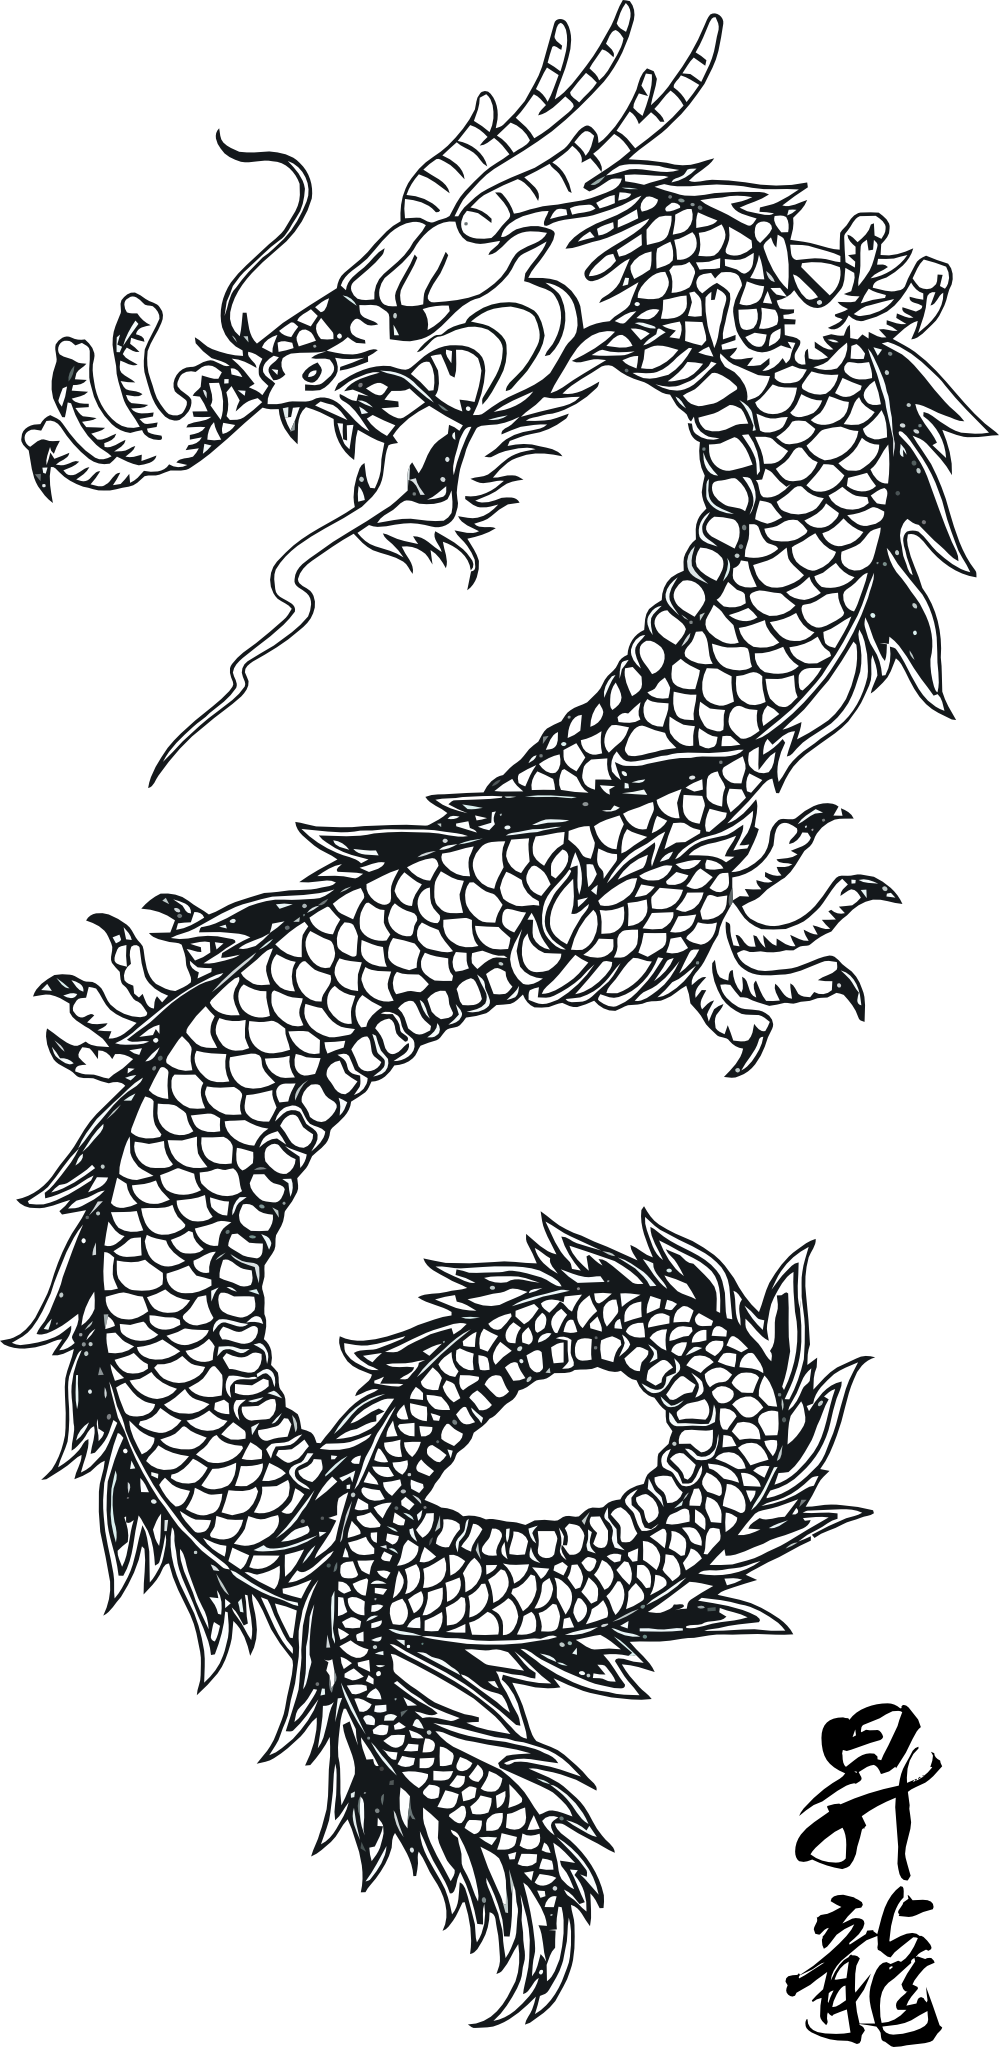 Dragon Png Image Dragon Tattoo Stencil Dragon Tattoo Pictures Japanese Dragon Tattoo